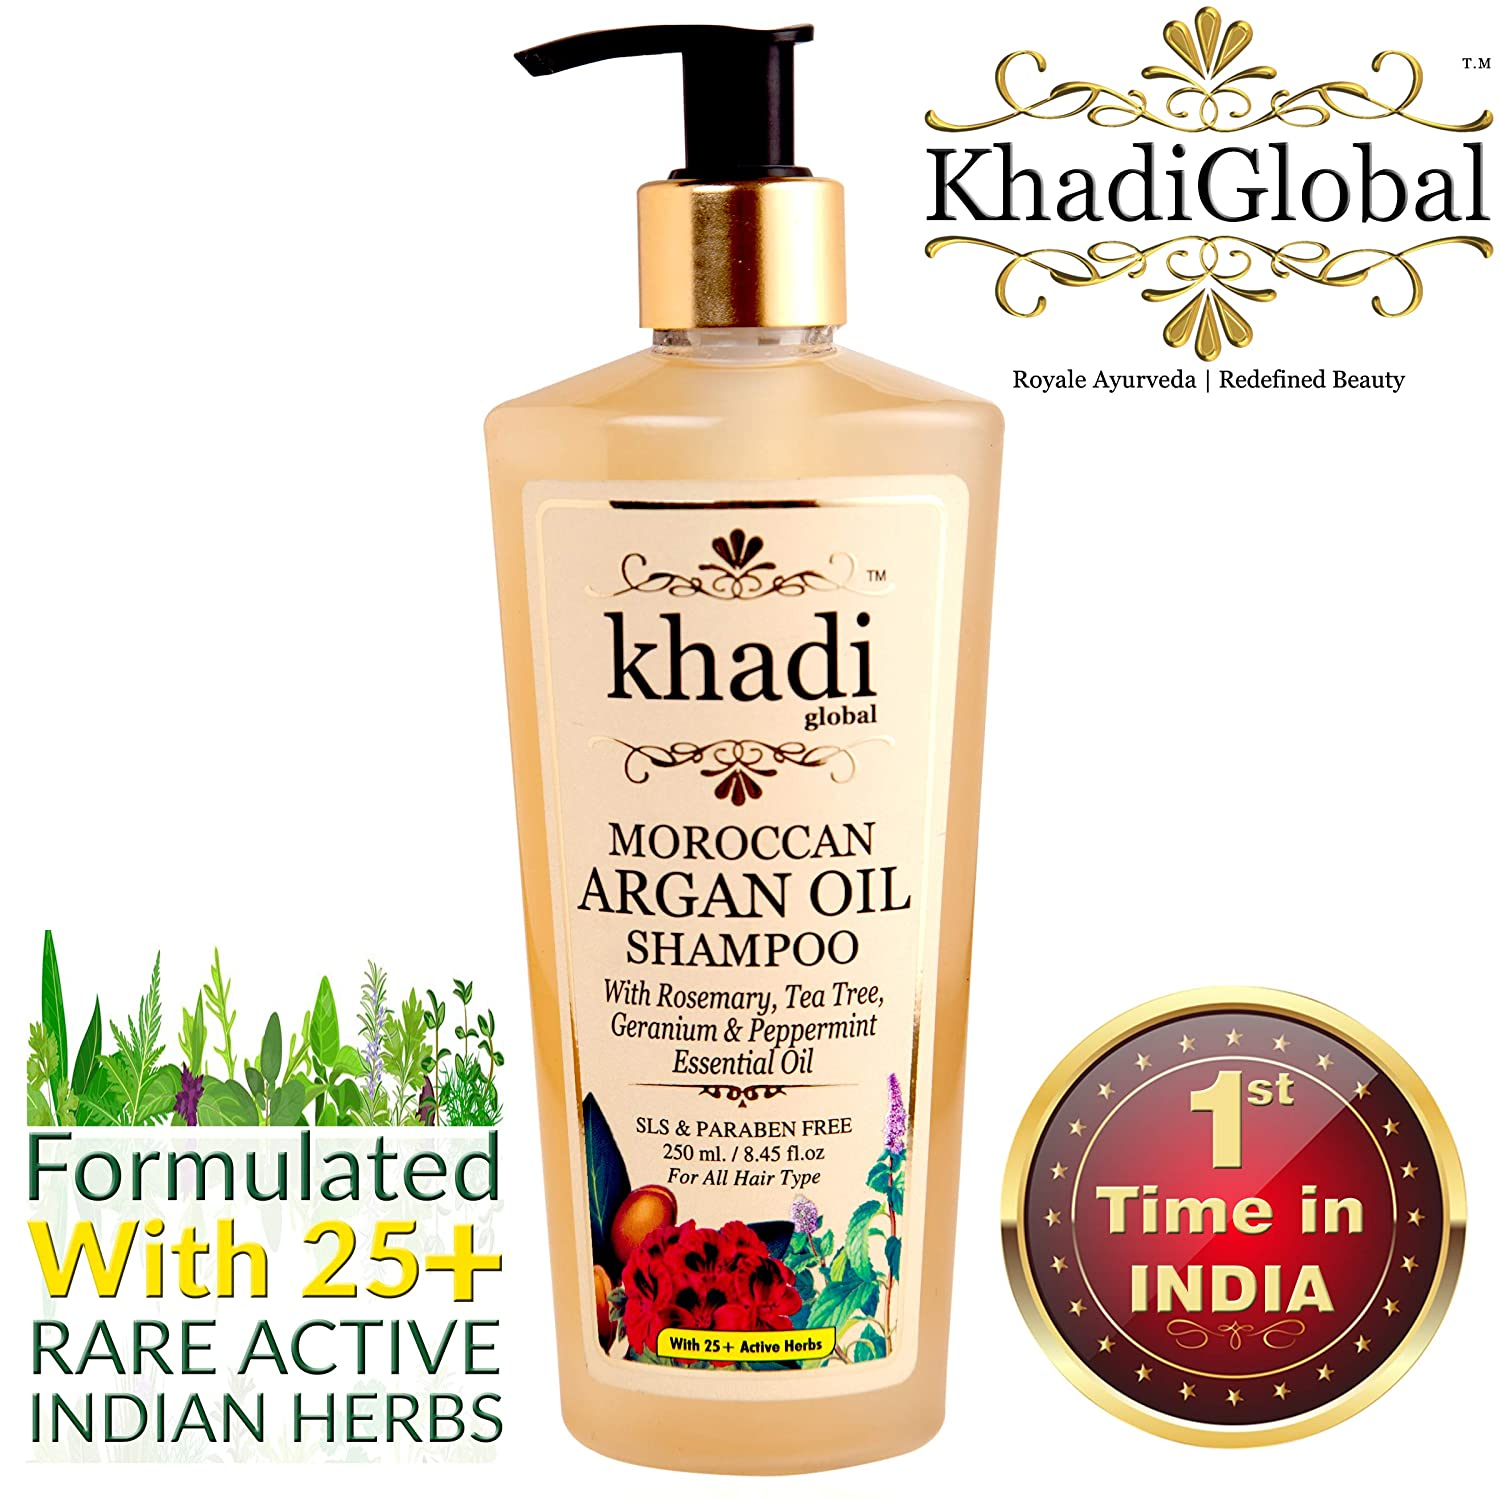 Khadi Global Moroccan Argan Hair Shampoo - Herbal shampoo in India